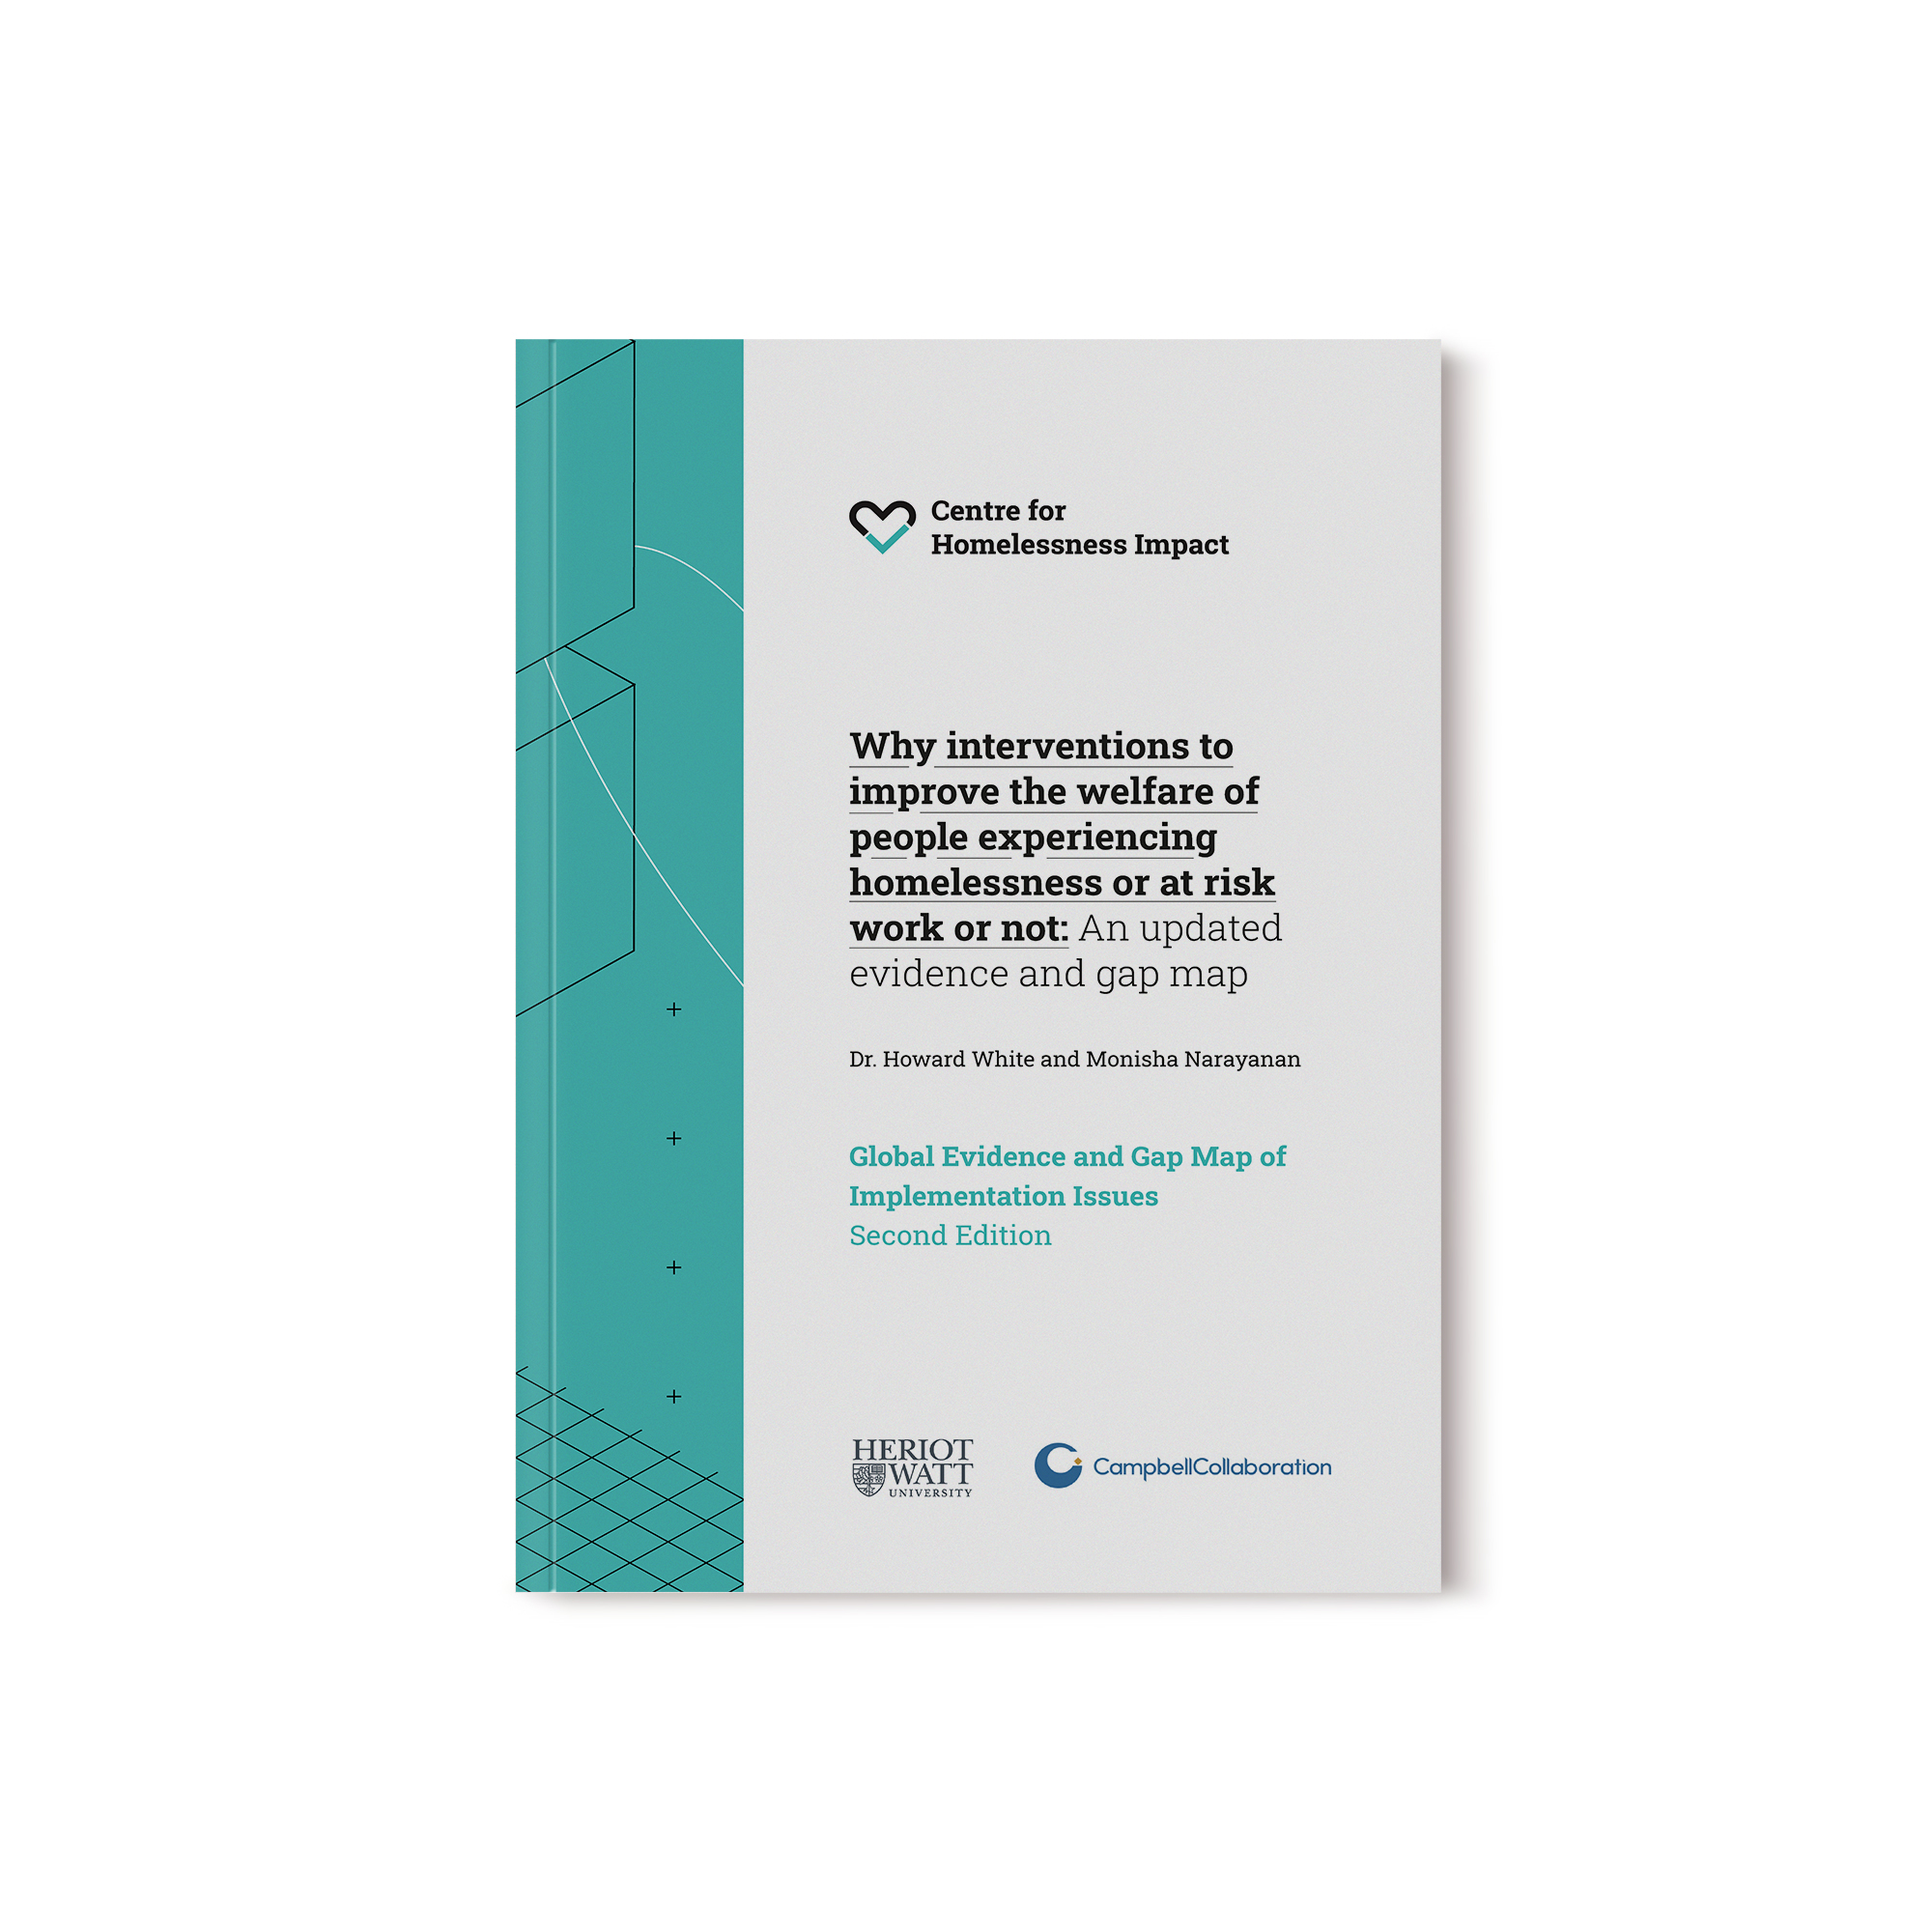 Evidence and Gap Maps Implementation: Second Edition